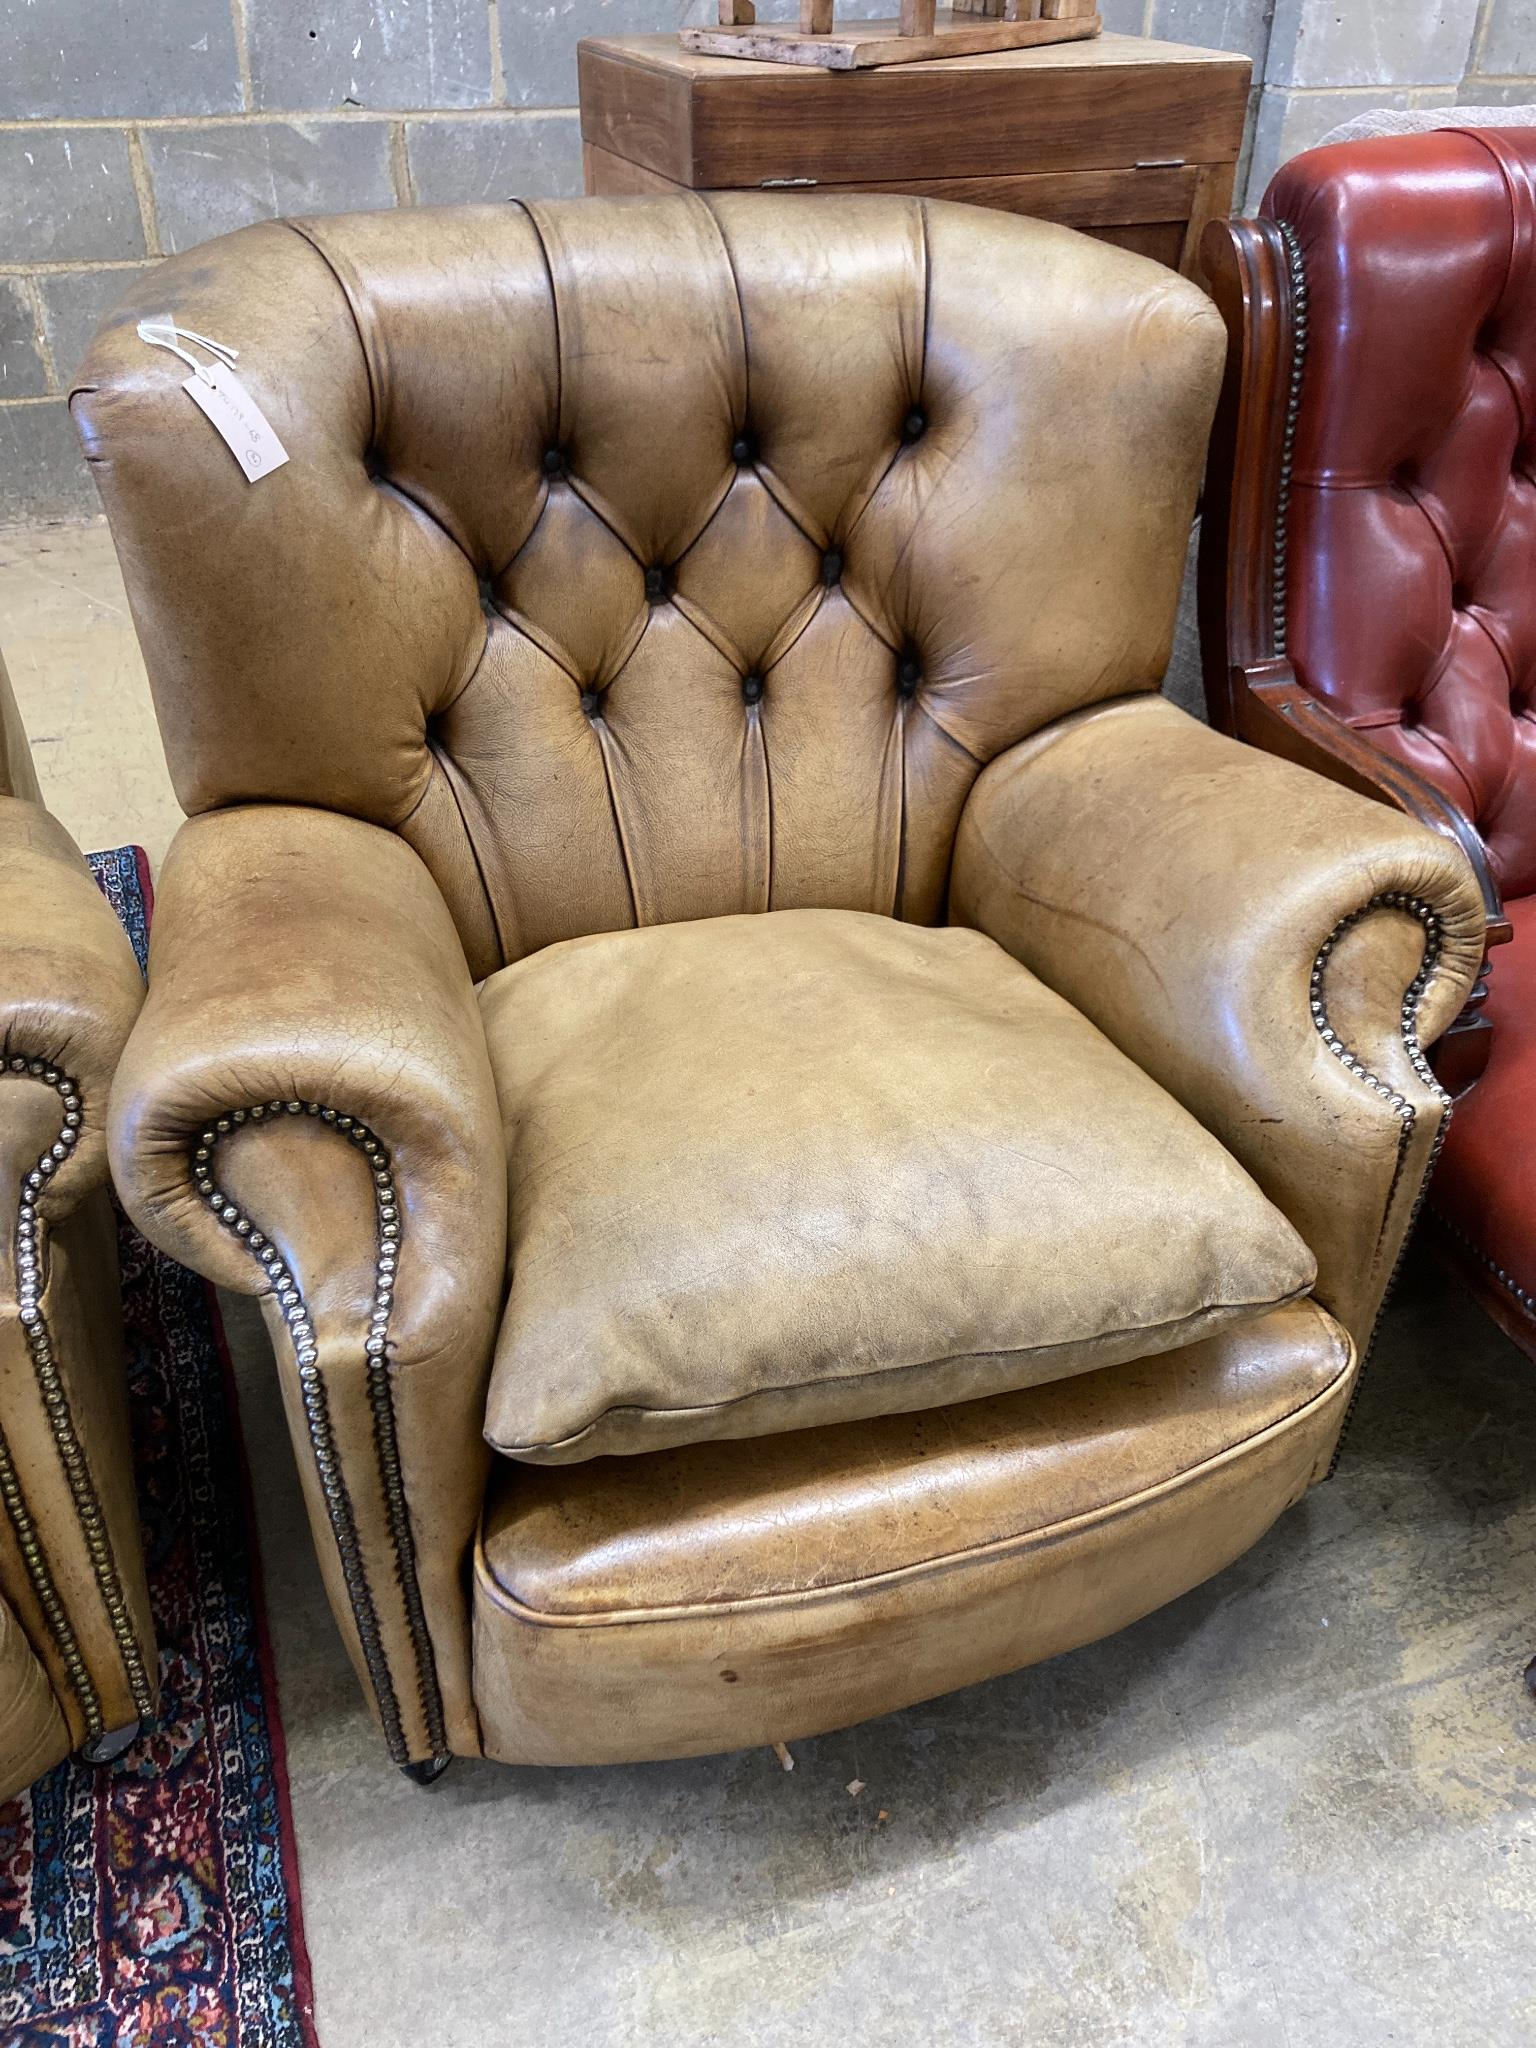 A three-seater Chesterfield leather settee, length 180cm, depth 100cm, height 84cm and a matching - Image 3 of 3